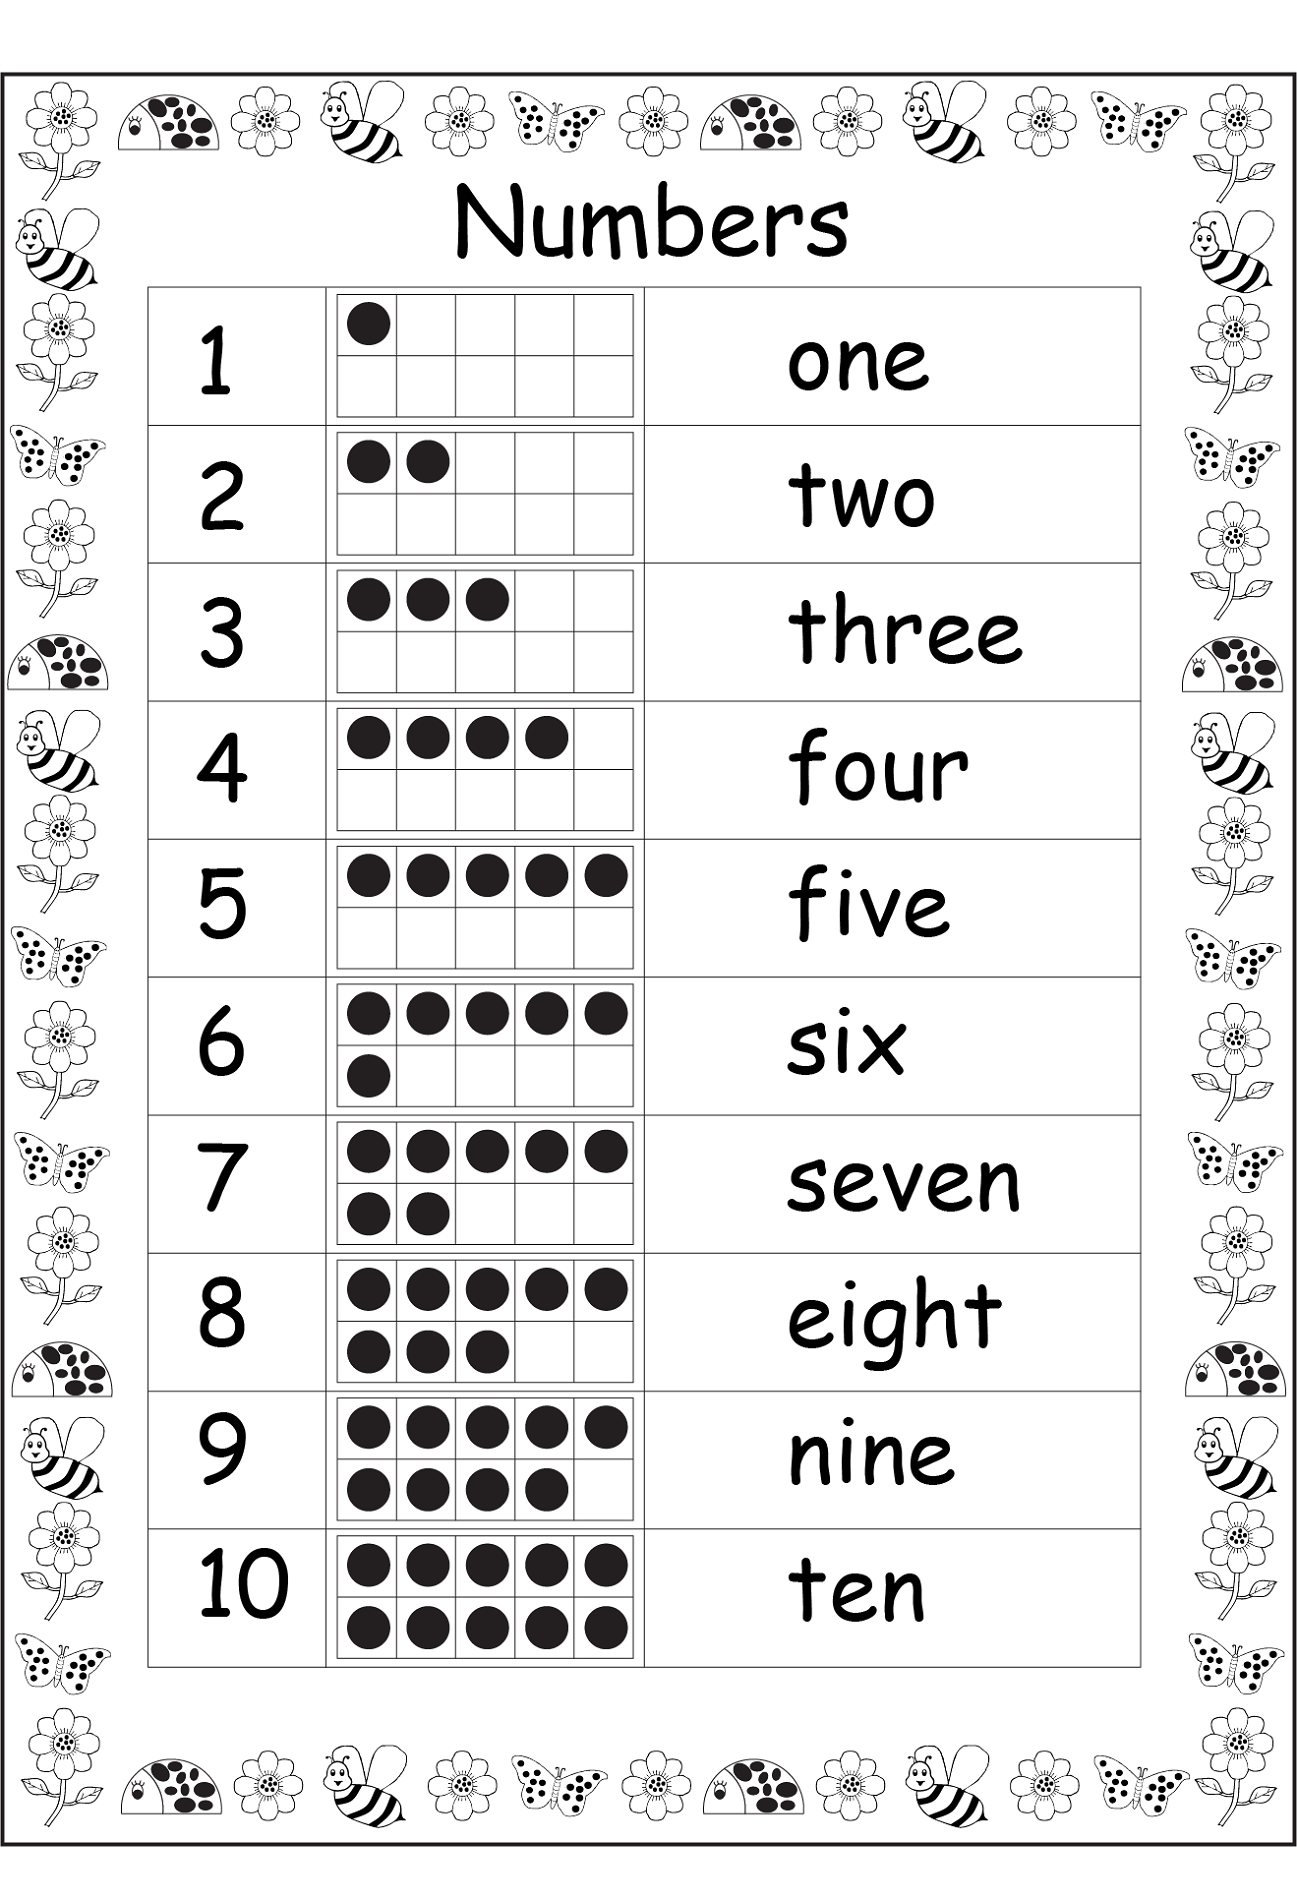 Printable Number Charts 1 10